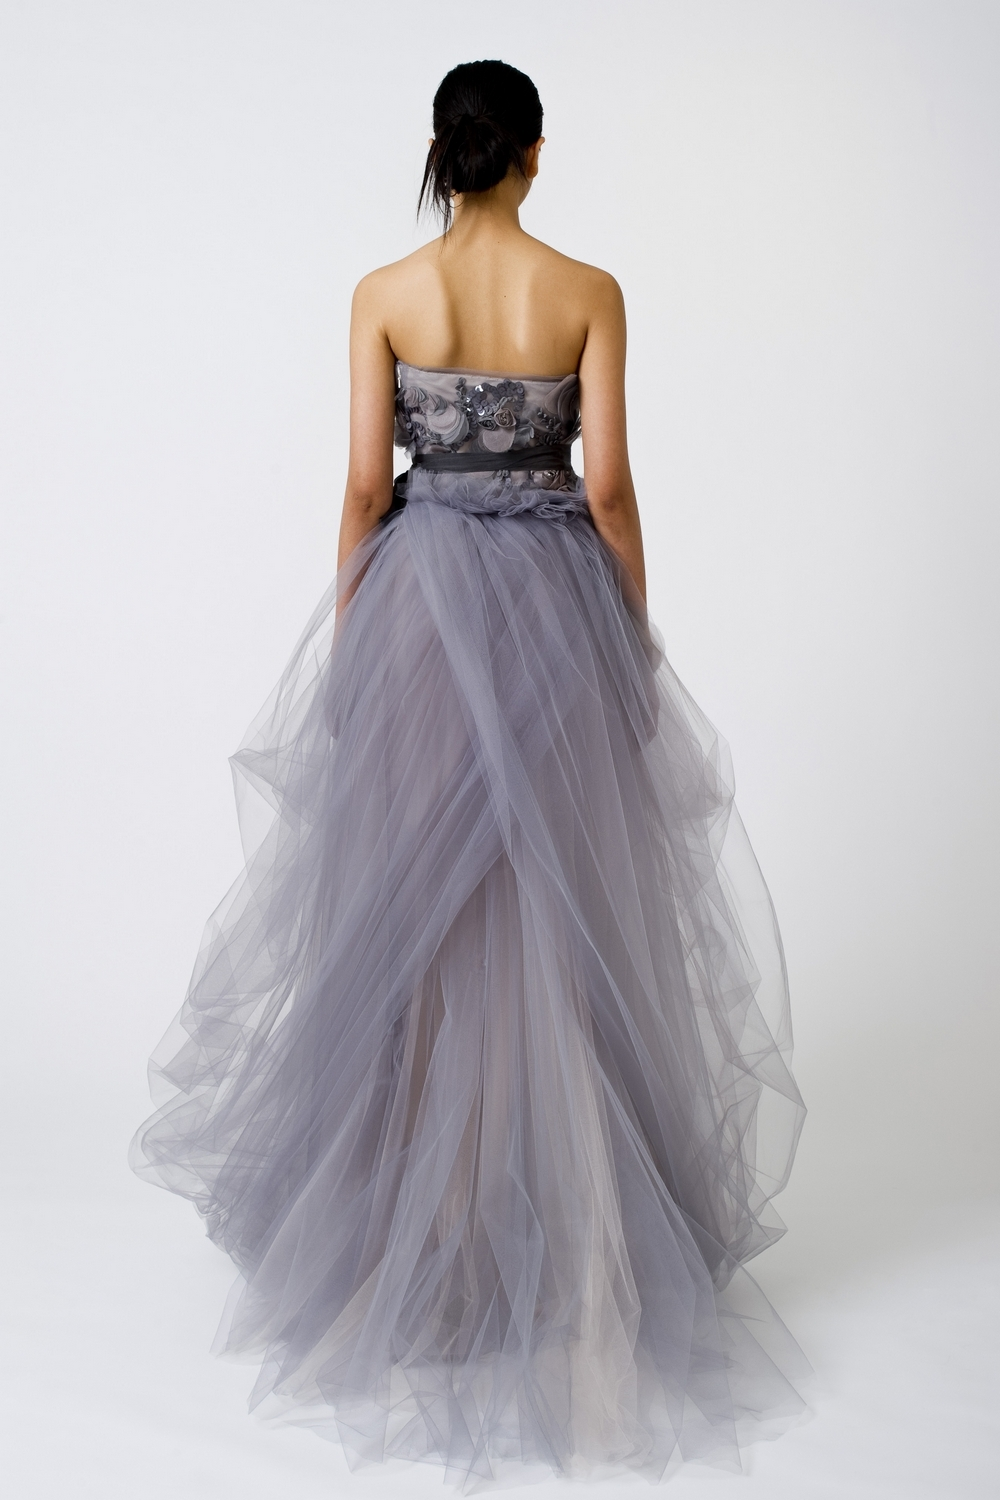 4-spring-2011-vera-wang-wedding-dress-color-lilac-tulle-beading-back.full